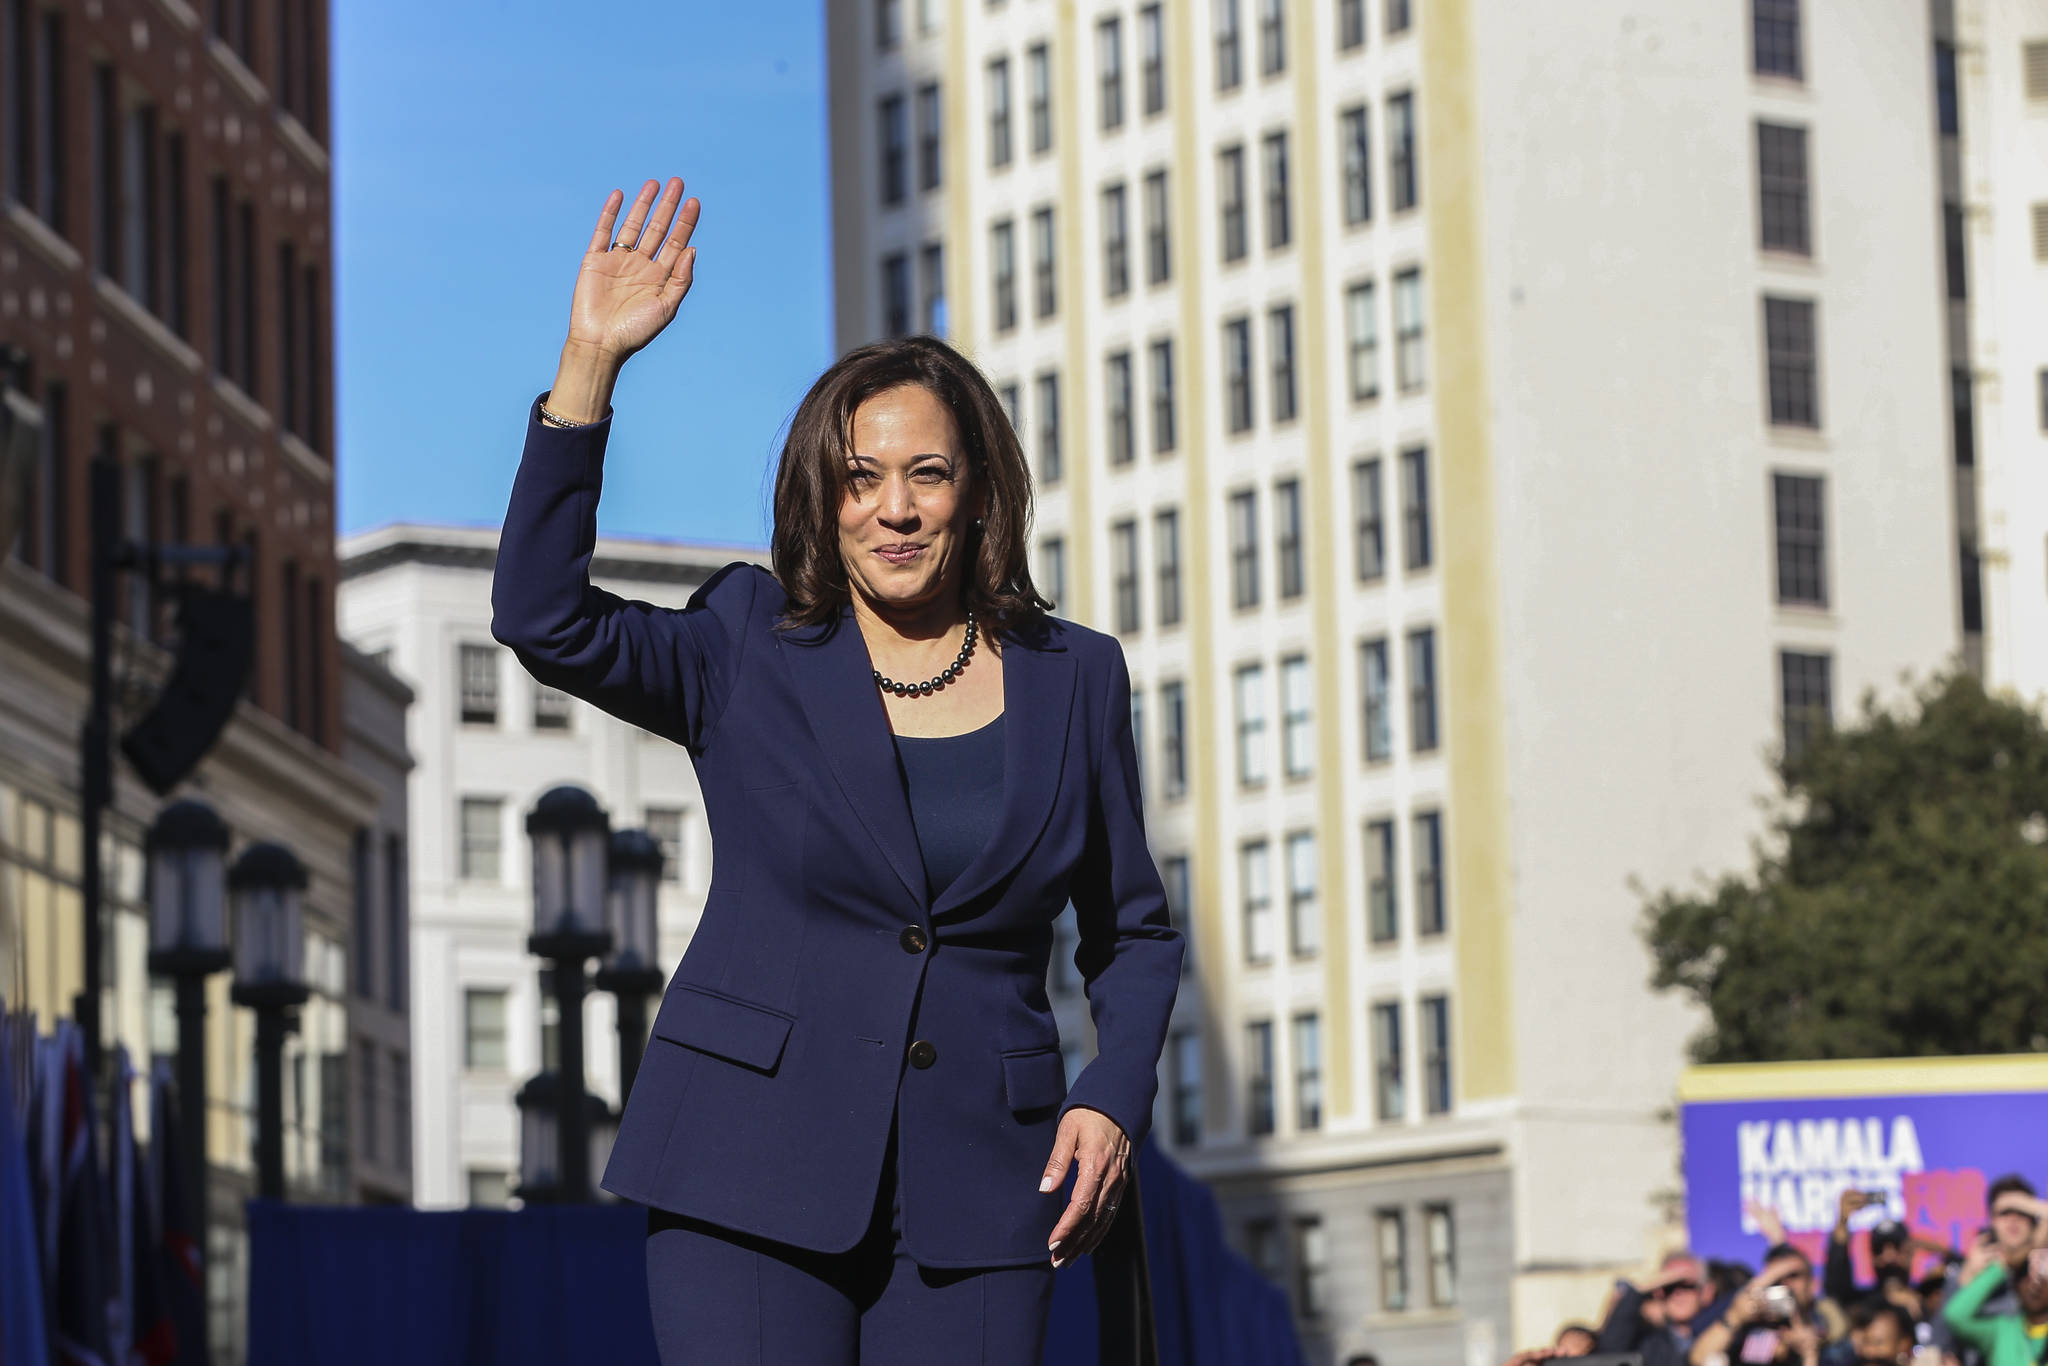 U.S. Senator Kamala Harris speaks at her official launch rally for her campaign for President of the United States in 2020 on January 27, 2019 in Oakland. Harris was chosen as a running mate by former Vice President Joe Biden on Tuesday in his presidential run. (Photography by Christopher Victorio for SF Weekly)